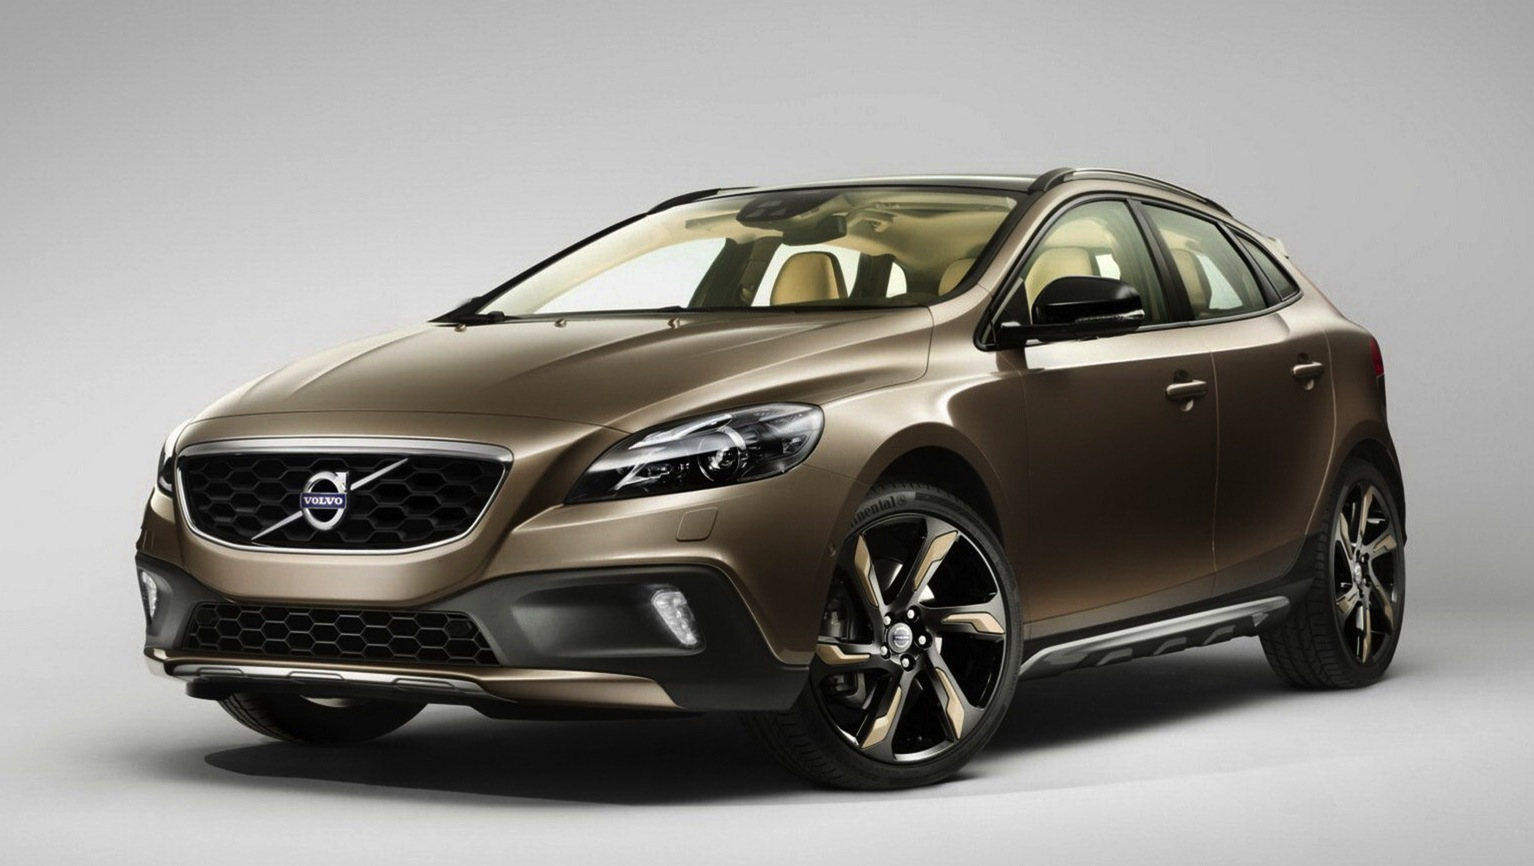 volvo v40 cross country leaks online photos 1 of 14. Black Bedroom Furniture Sets. Home Design Ideas